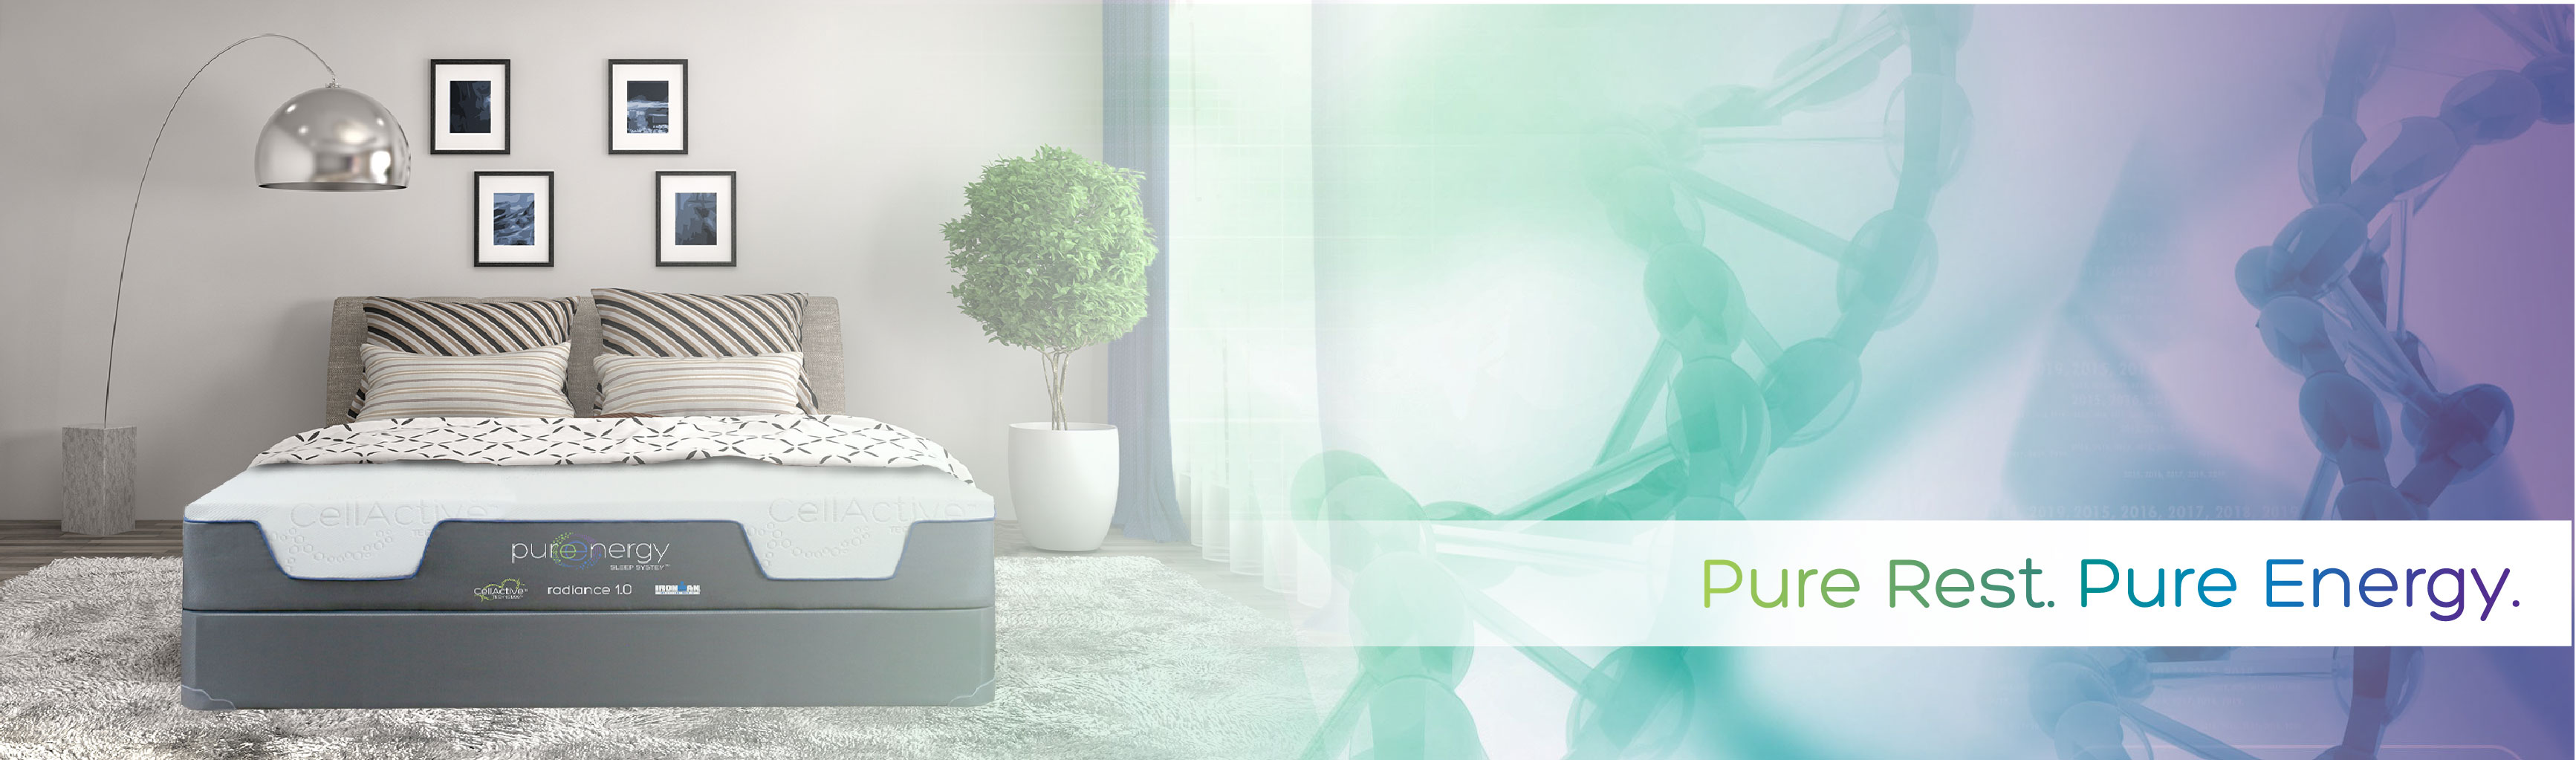 pure energy mattress can help you rest well